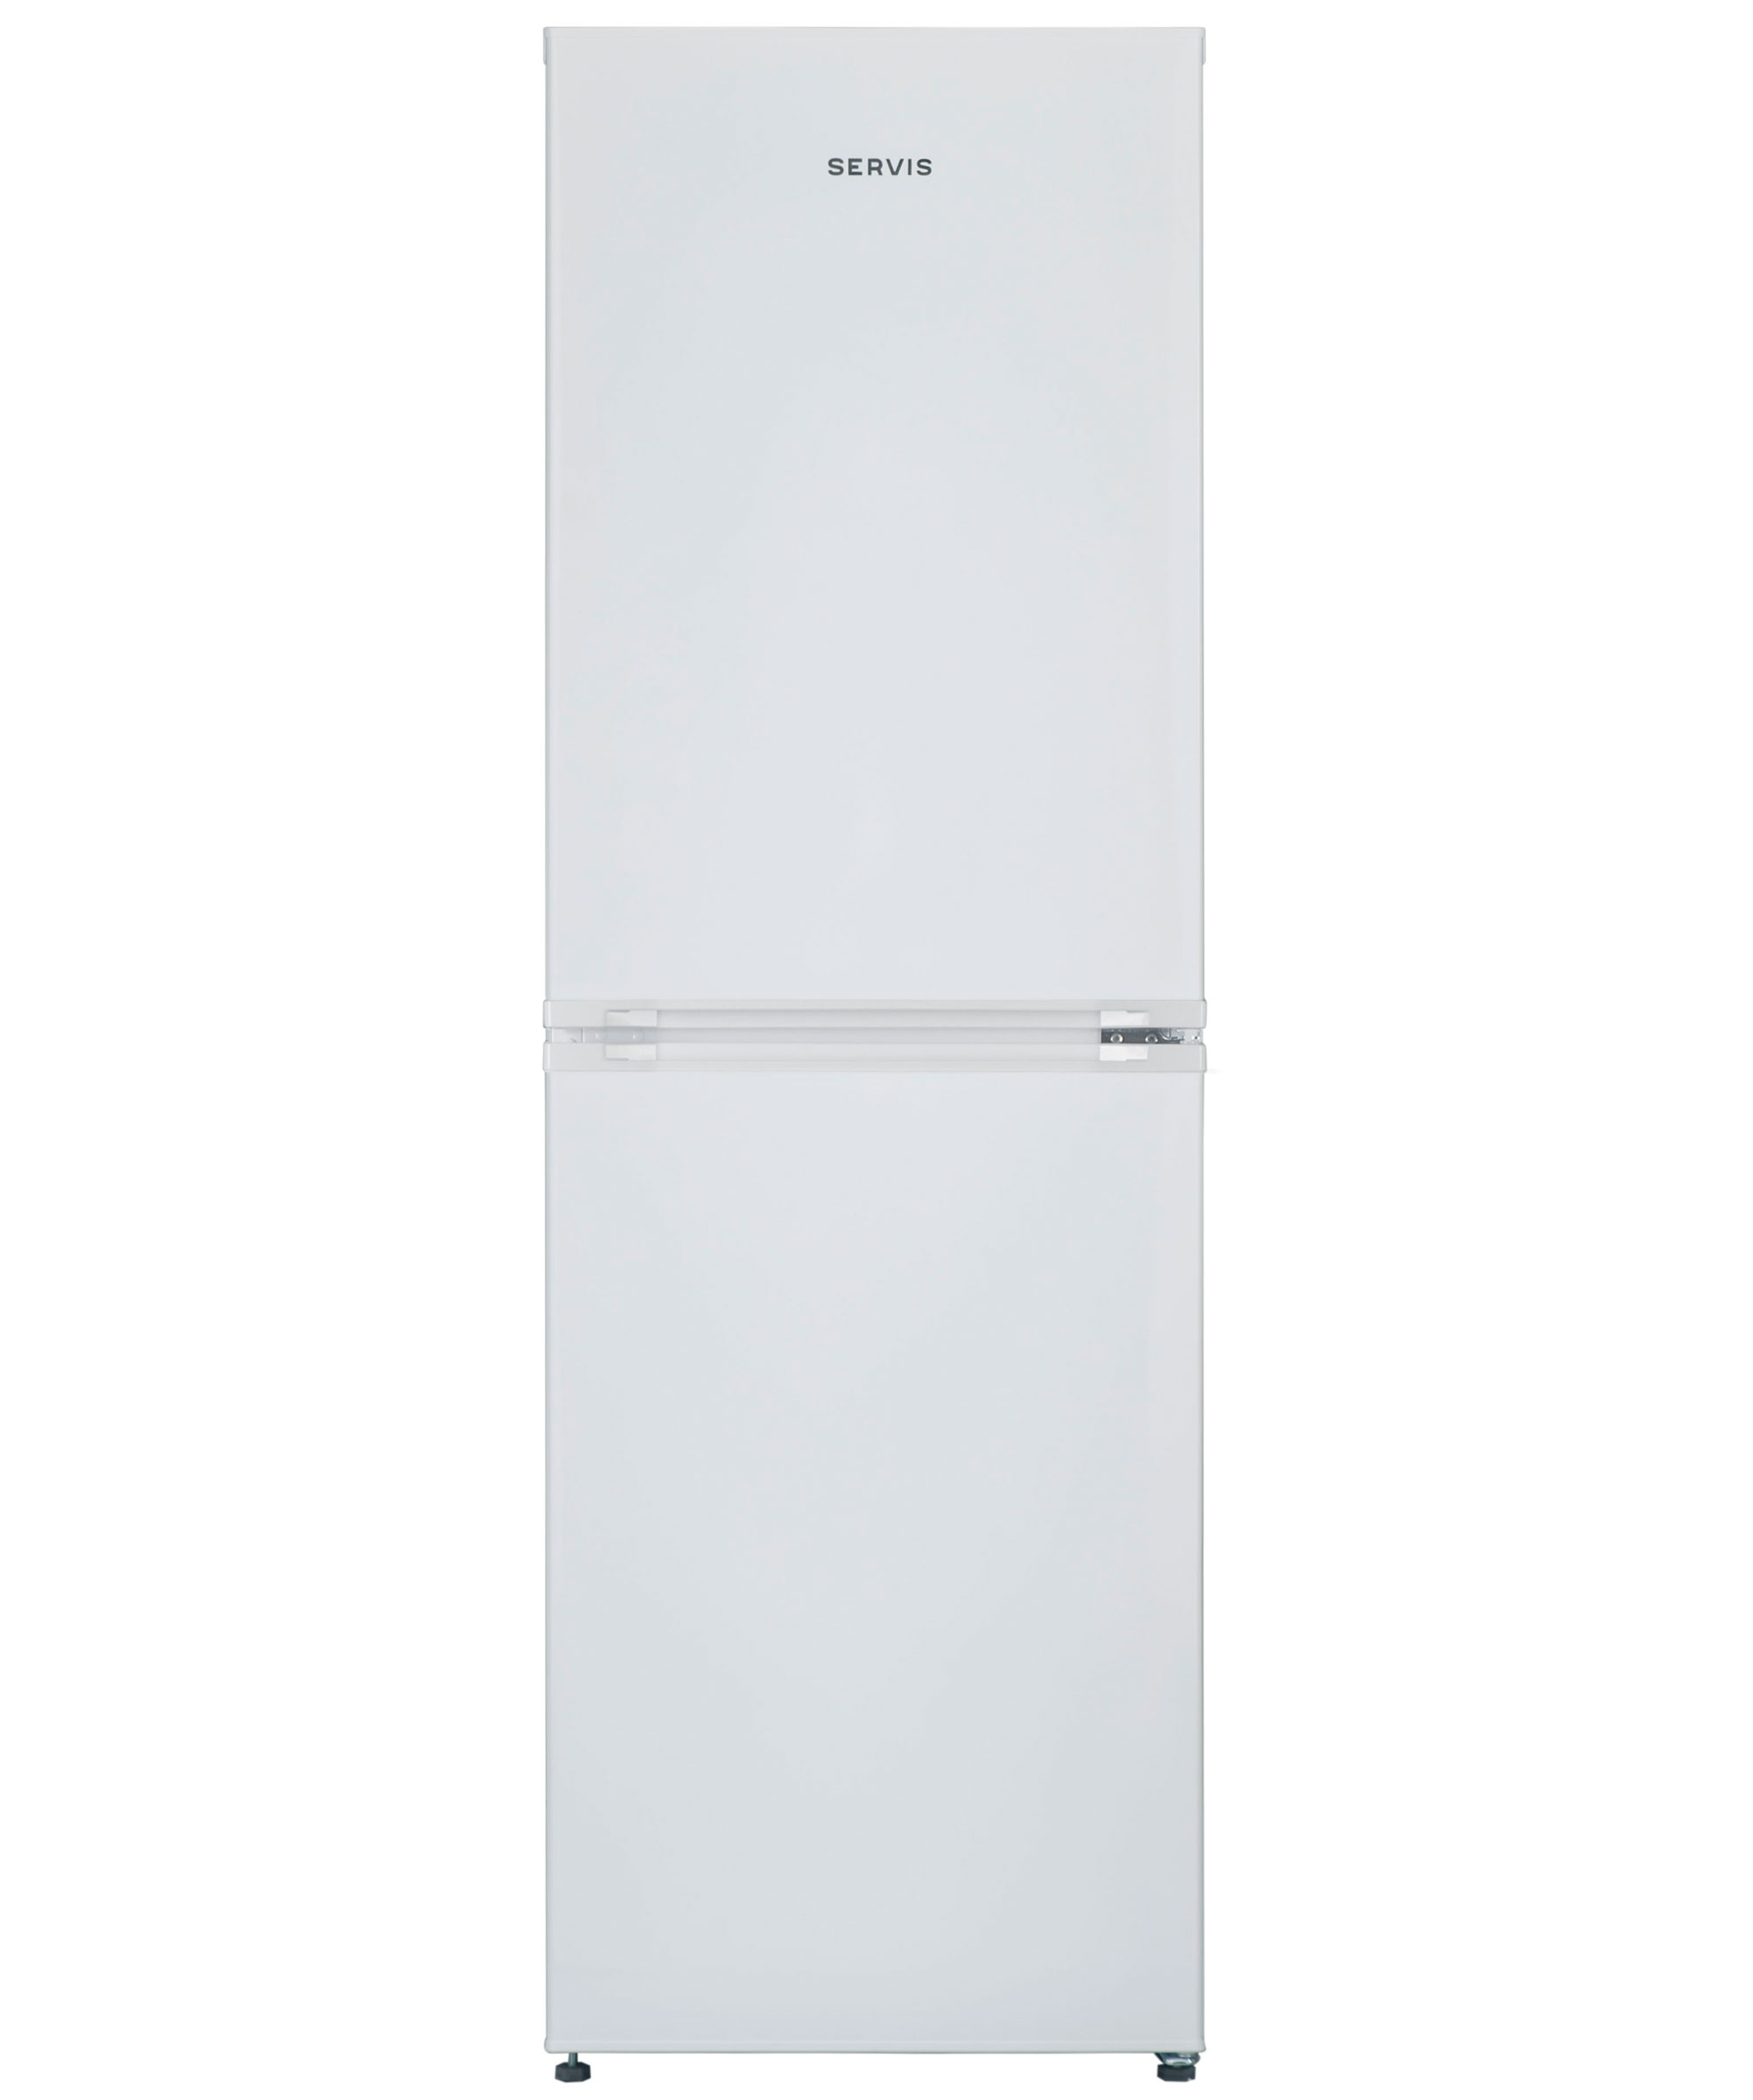 FF48148 - Fridge Freezer